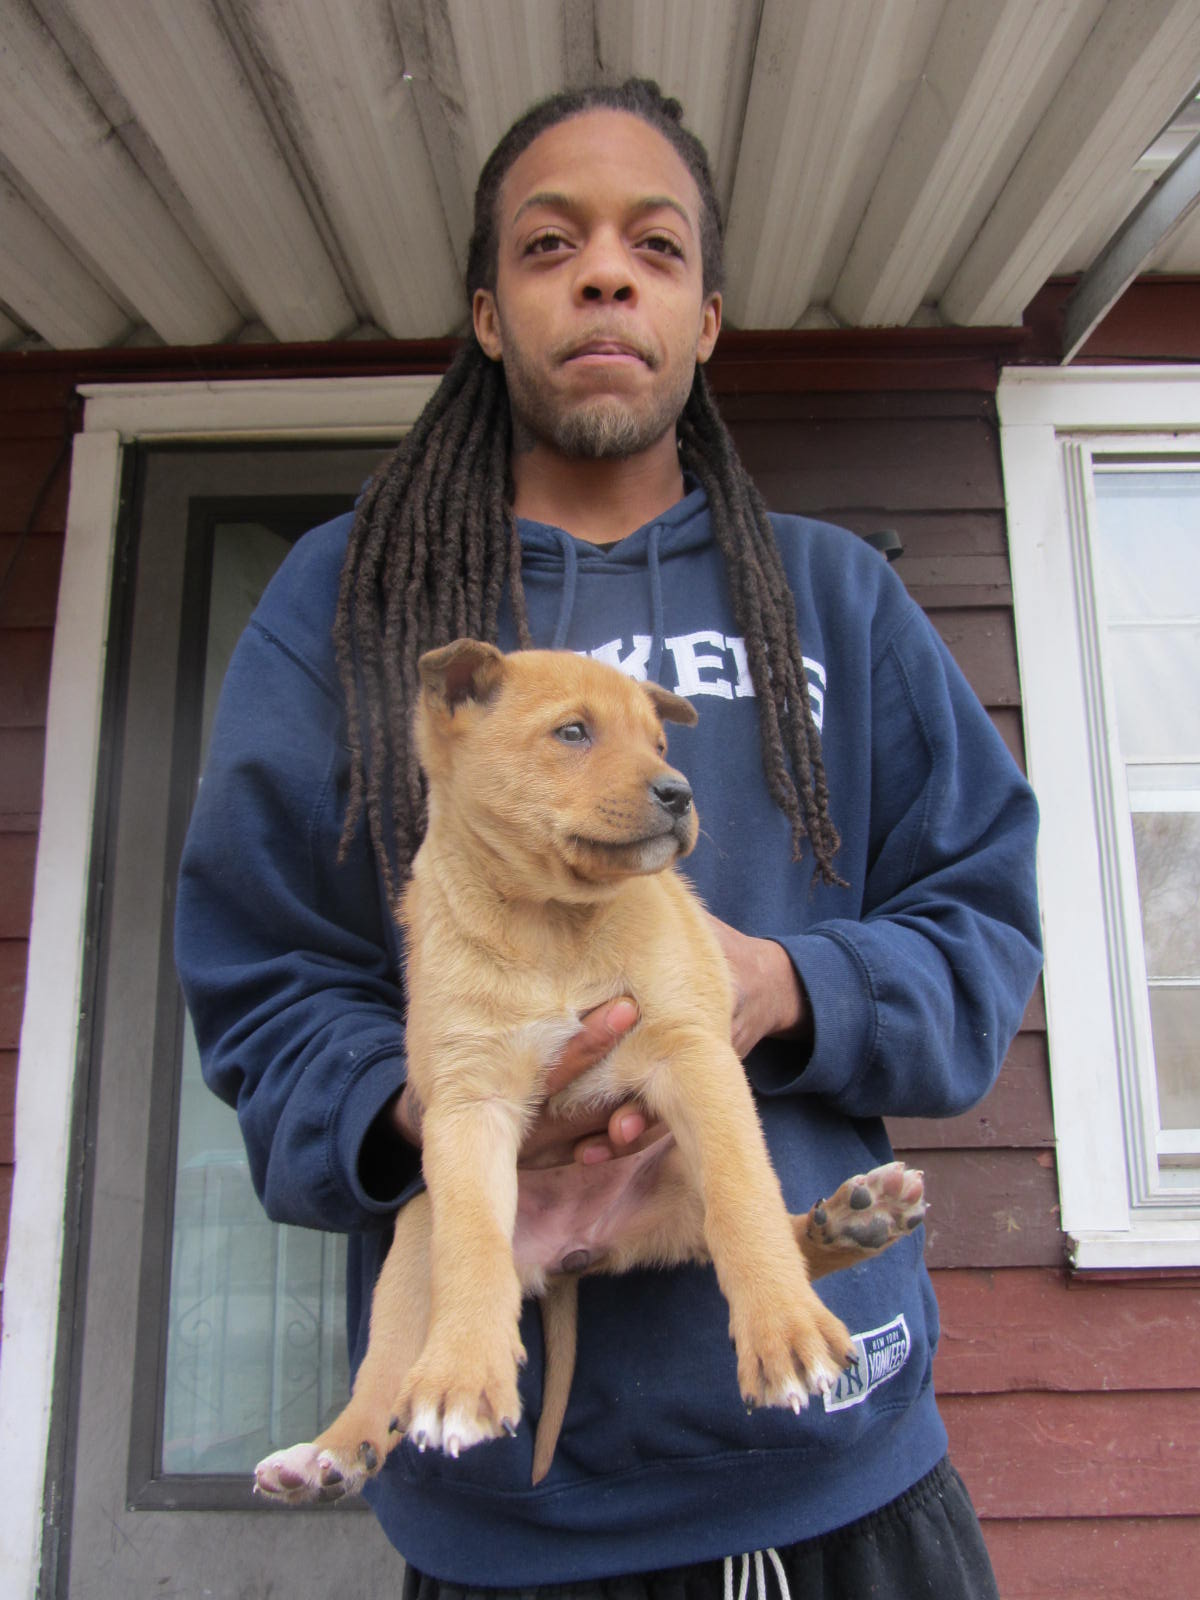 East St. Louis man with puppy